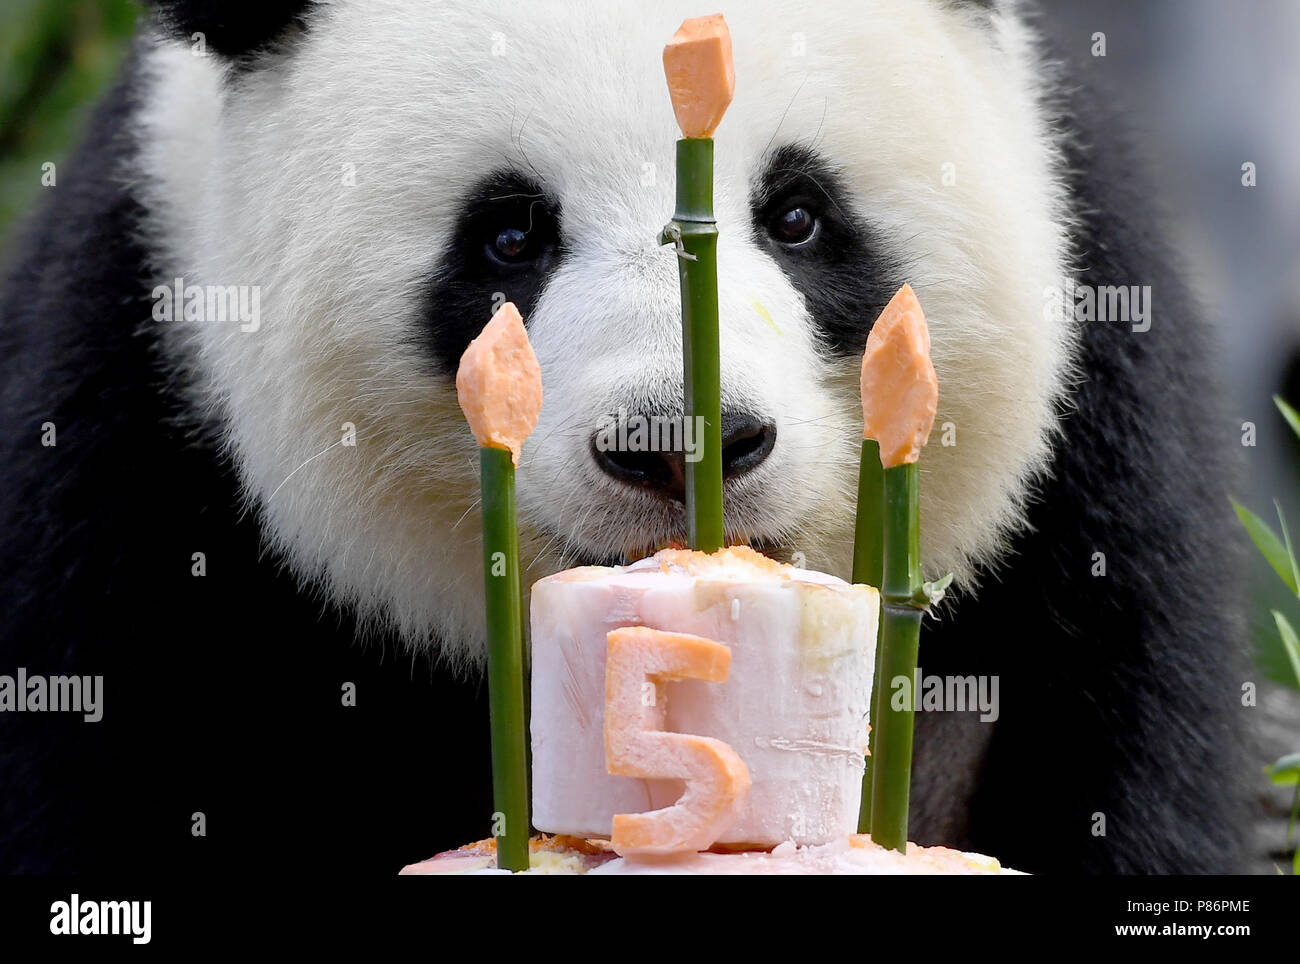 Berlin, Germany. 10th July, 2018. Panda female Meng Meng takes a look at her birthday cake at her enclosure at the Berlin Zoological Garden. The animal keepers served a sugar-free birthday cake with delicacies like bamboo, apples, carrots and ice on the occasion of her fifth birthday. Together with the male panda Jiao Qing the panda female Meng Meng from a reserve in Chengdu lives at the Berlin zoo as a Chinese 'loan'. Credit: Britta Pedersen/dpa-Zentralbild/dpa/Alamy Live News - Stock Image